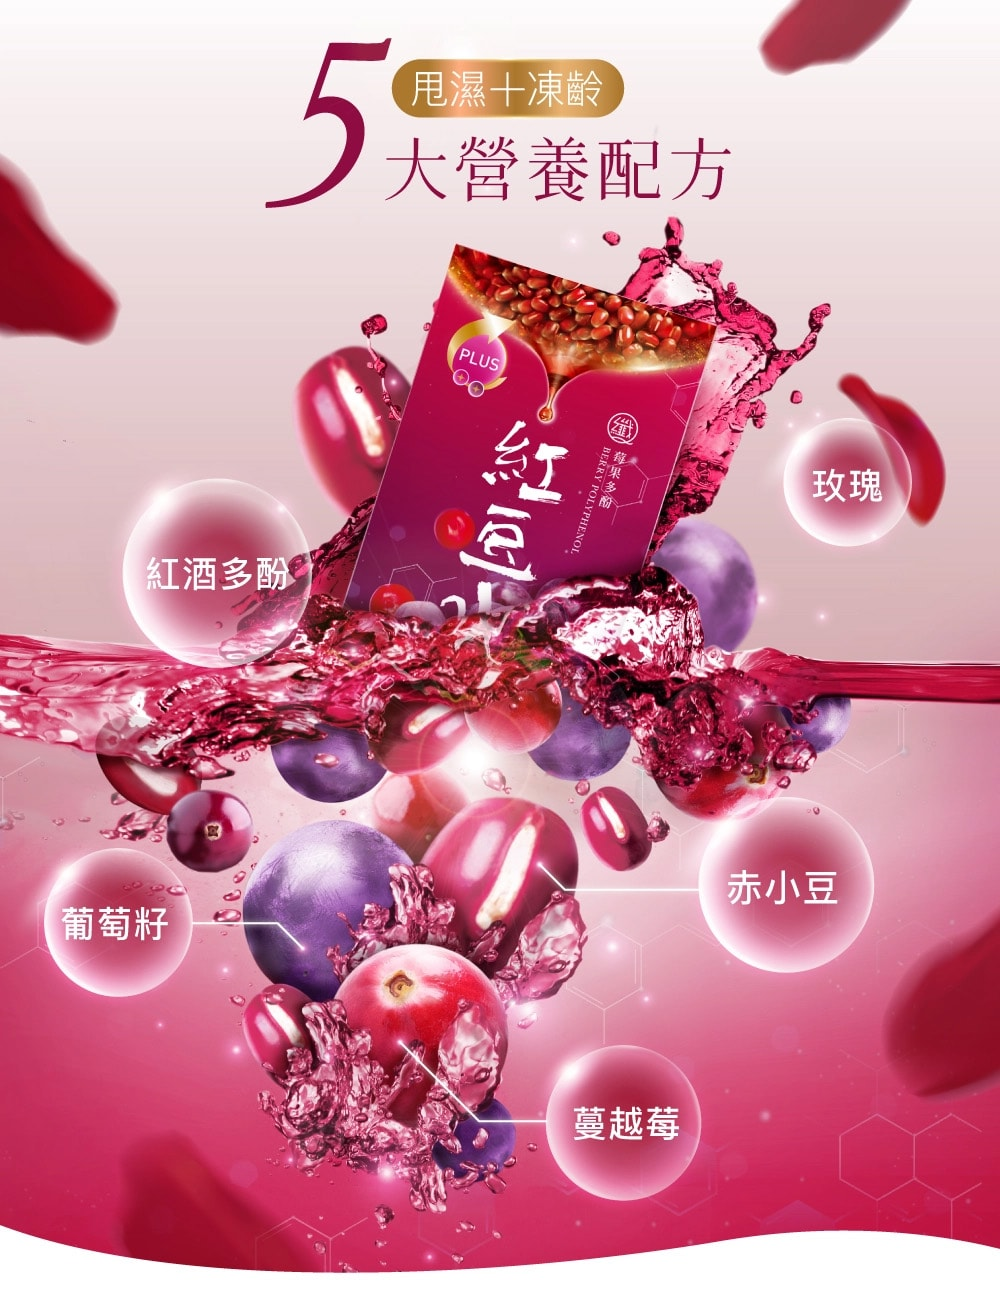 Berry Polyphenol Red Bean - Nutrition ingredients